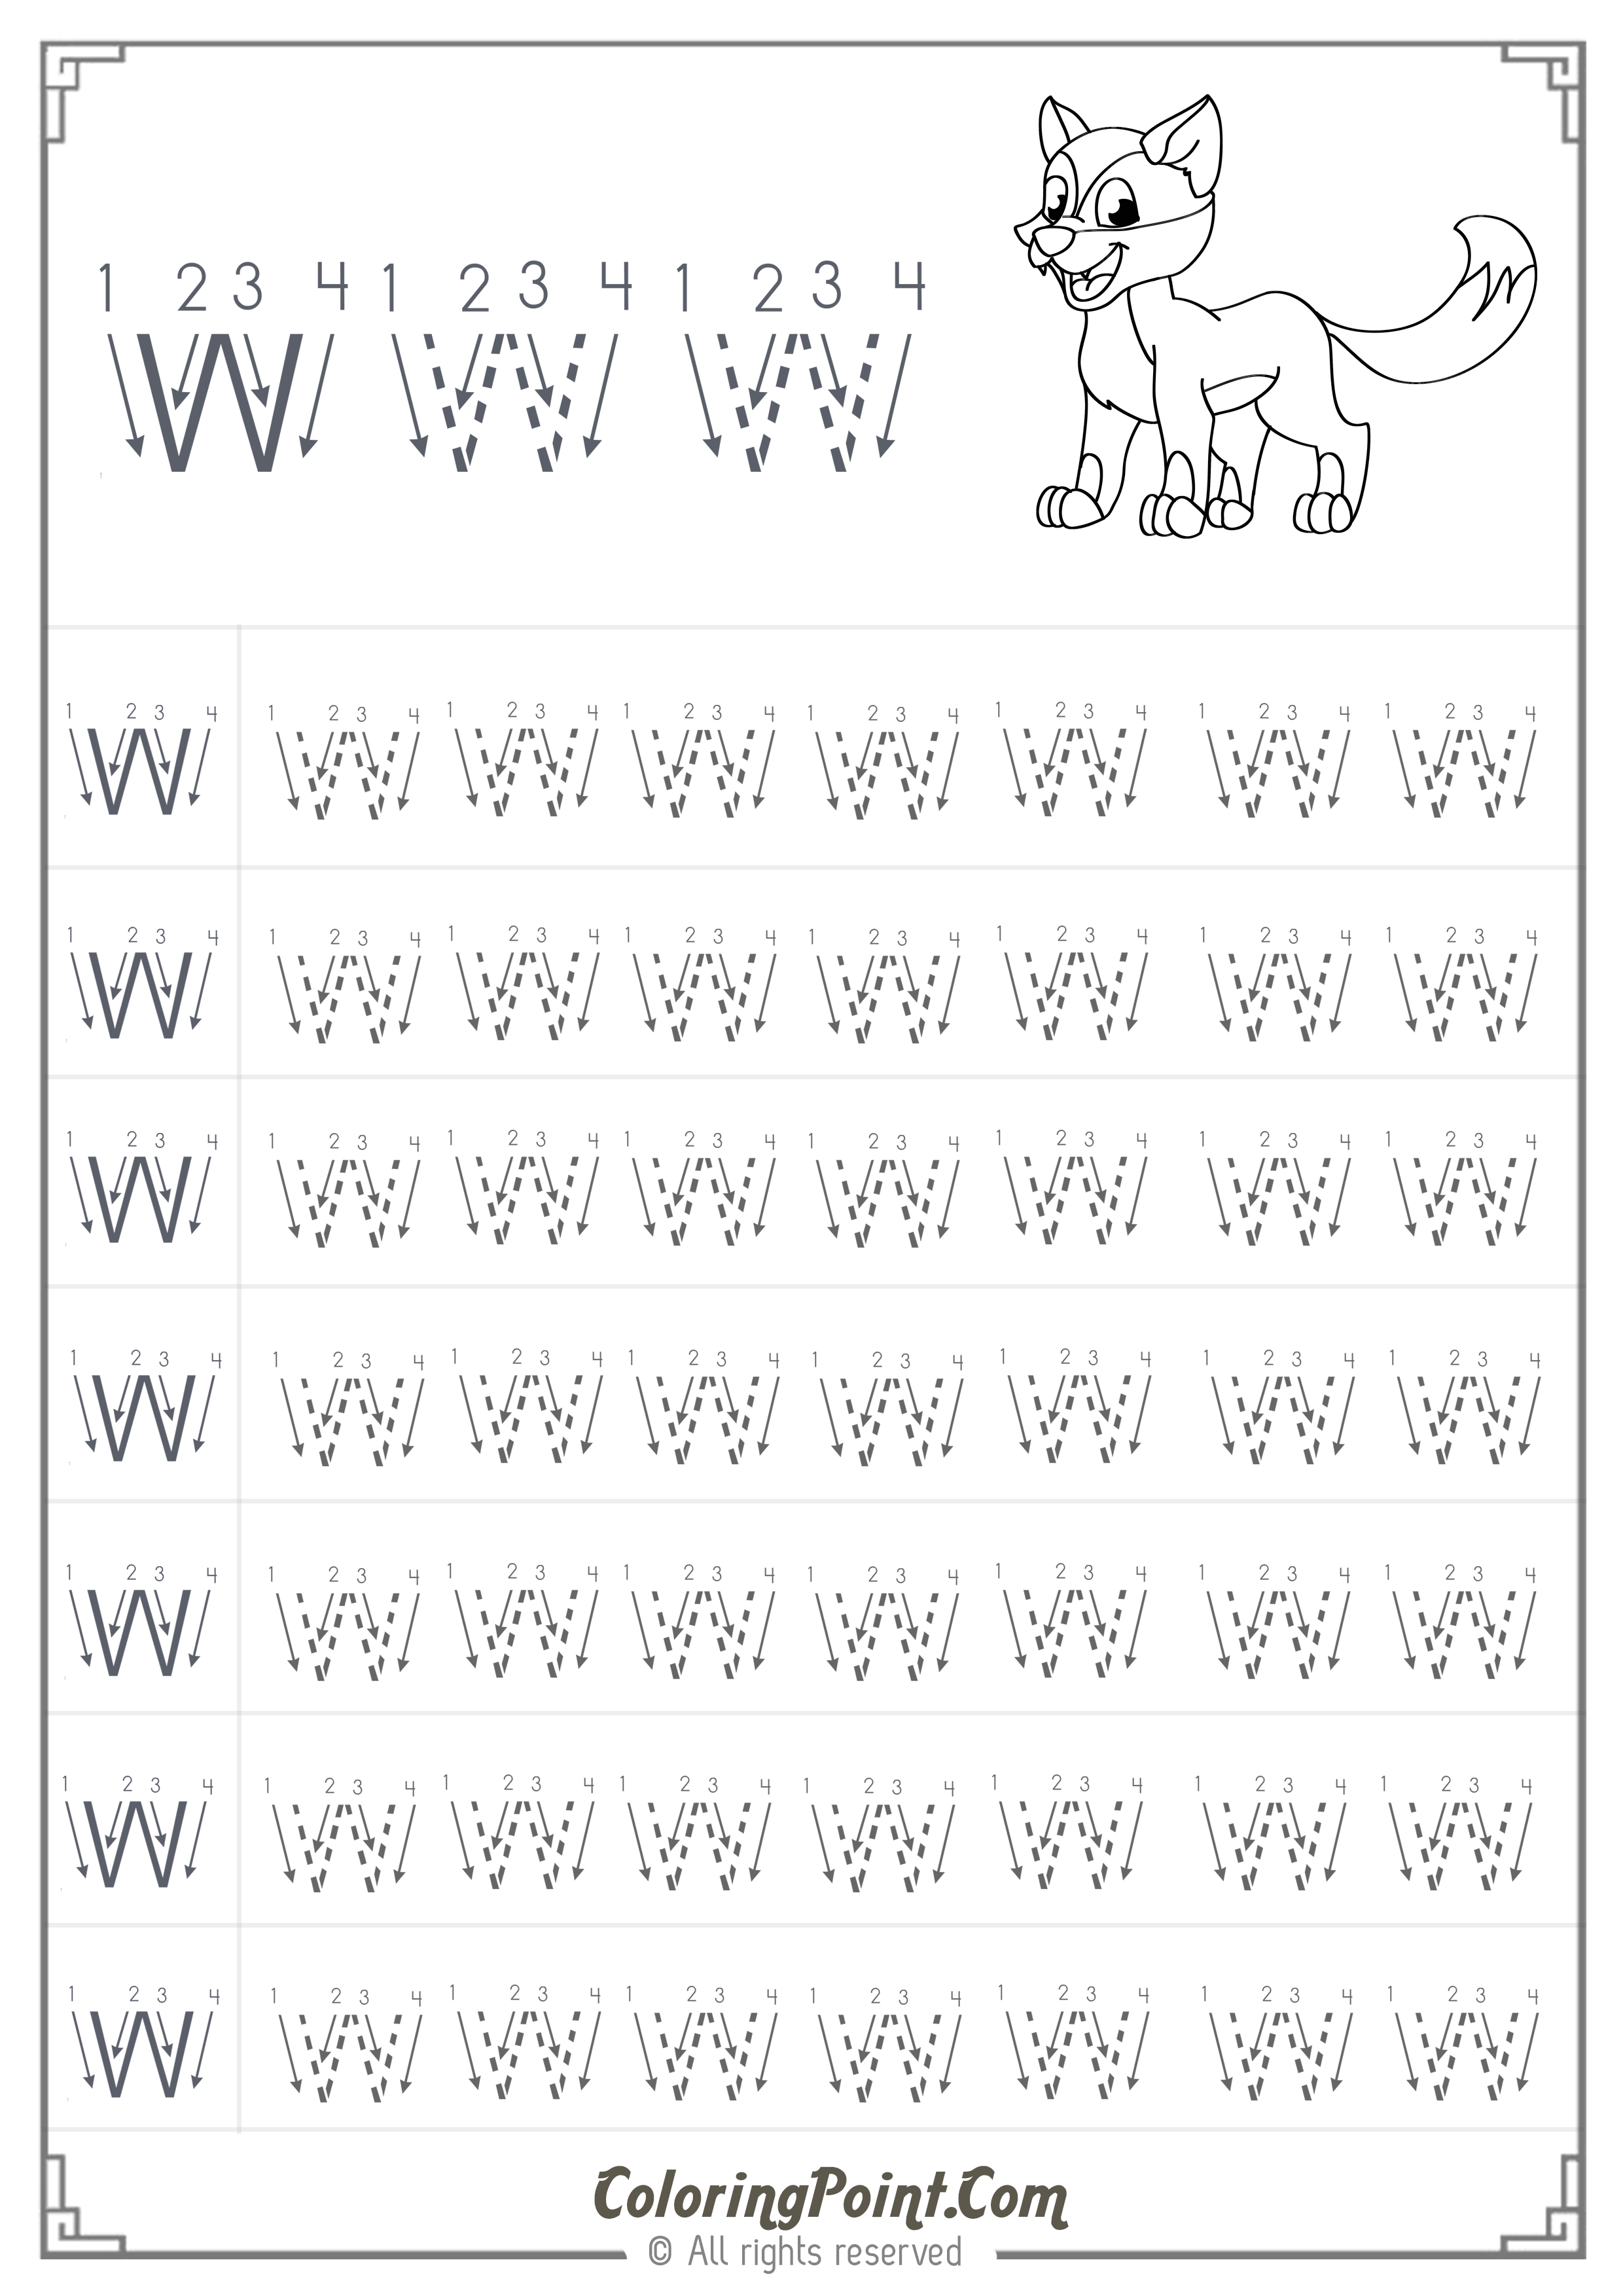 worksheet Preschool Free Worksheets free printable letter w tracing worksheets for preschool connect the dots alphabet worksheets